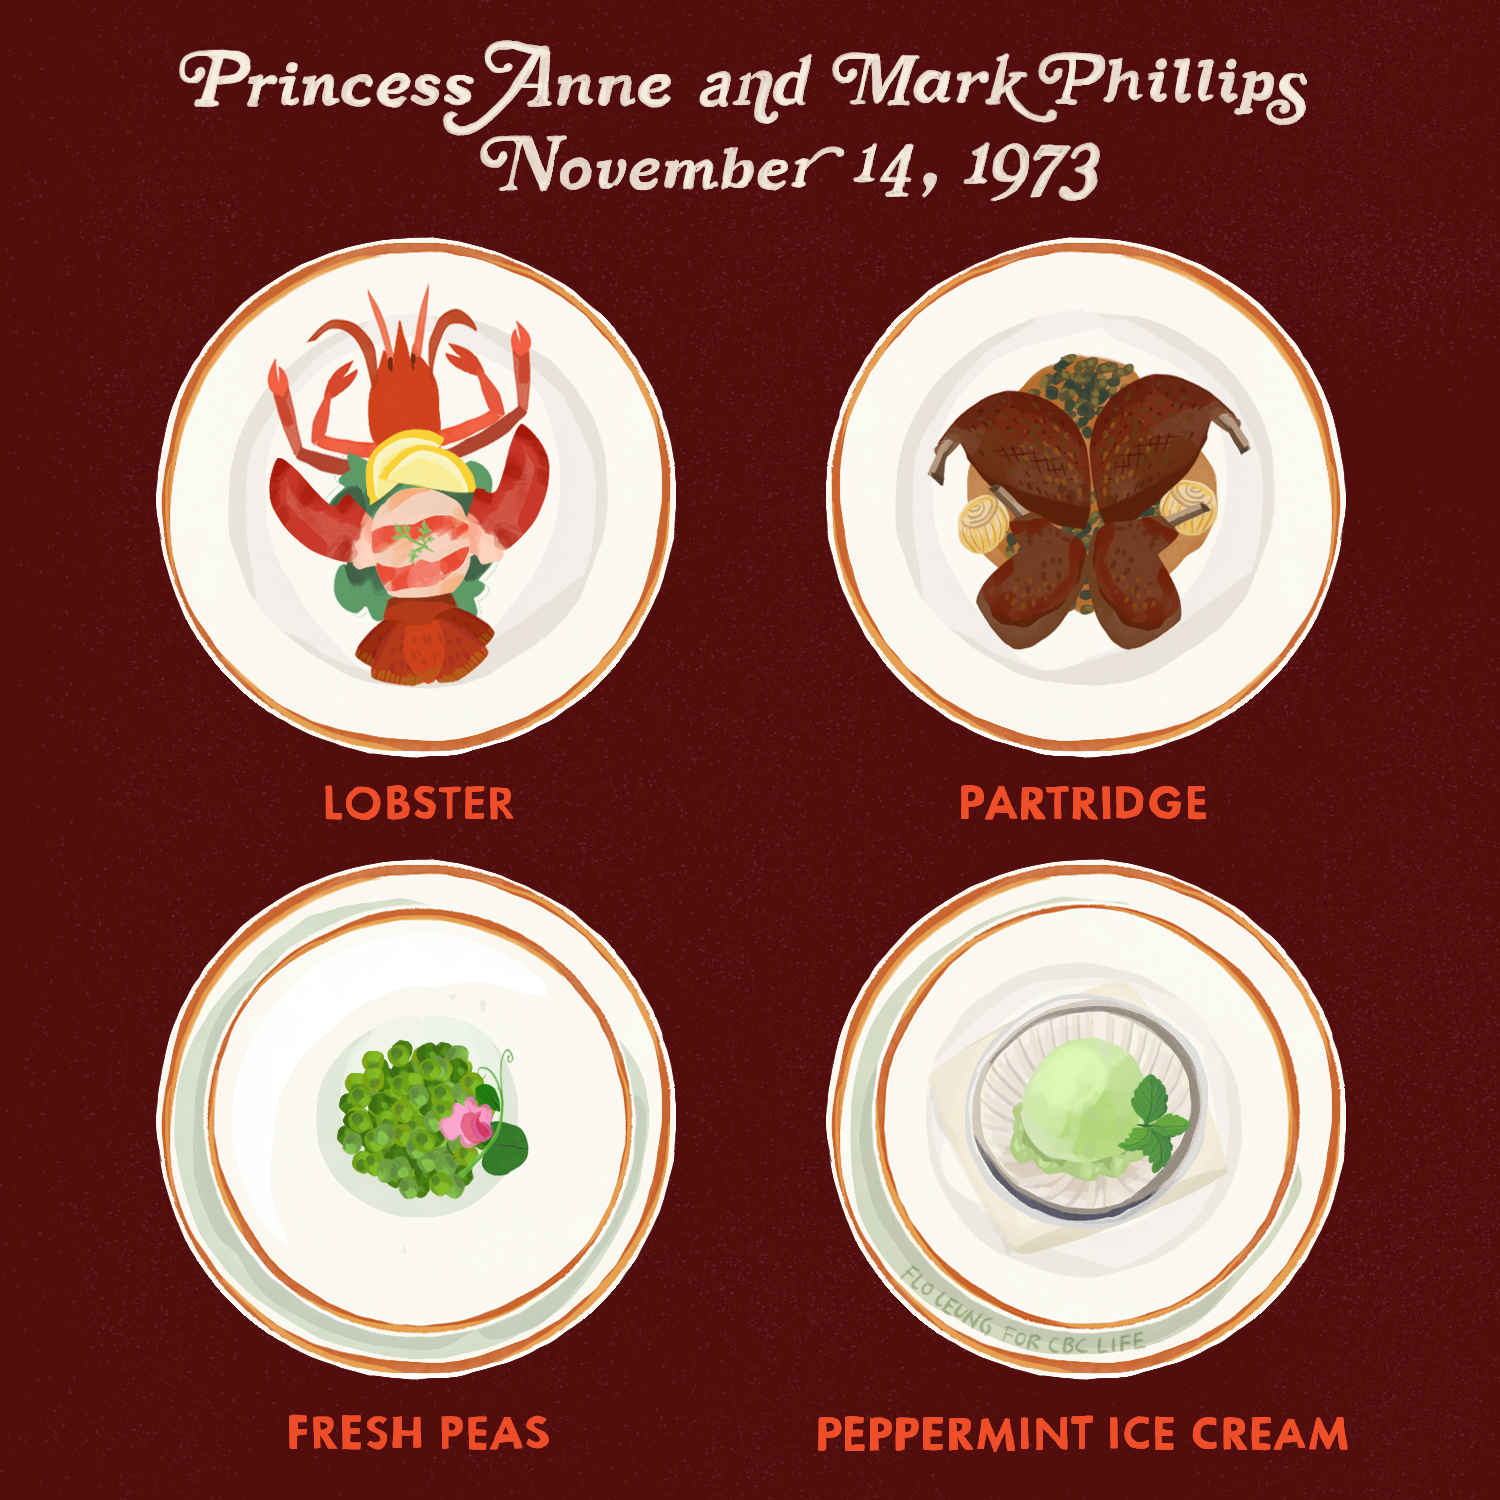 Top, L to R: Lobster, Partridge; Bottom, L to R: Fresh peas, Peppermint ice cream